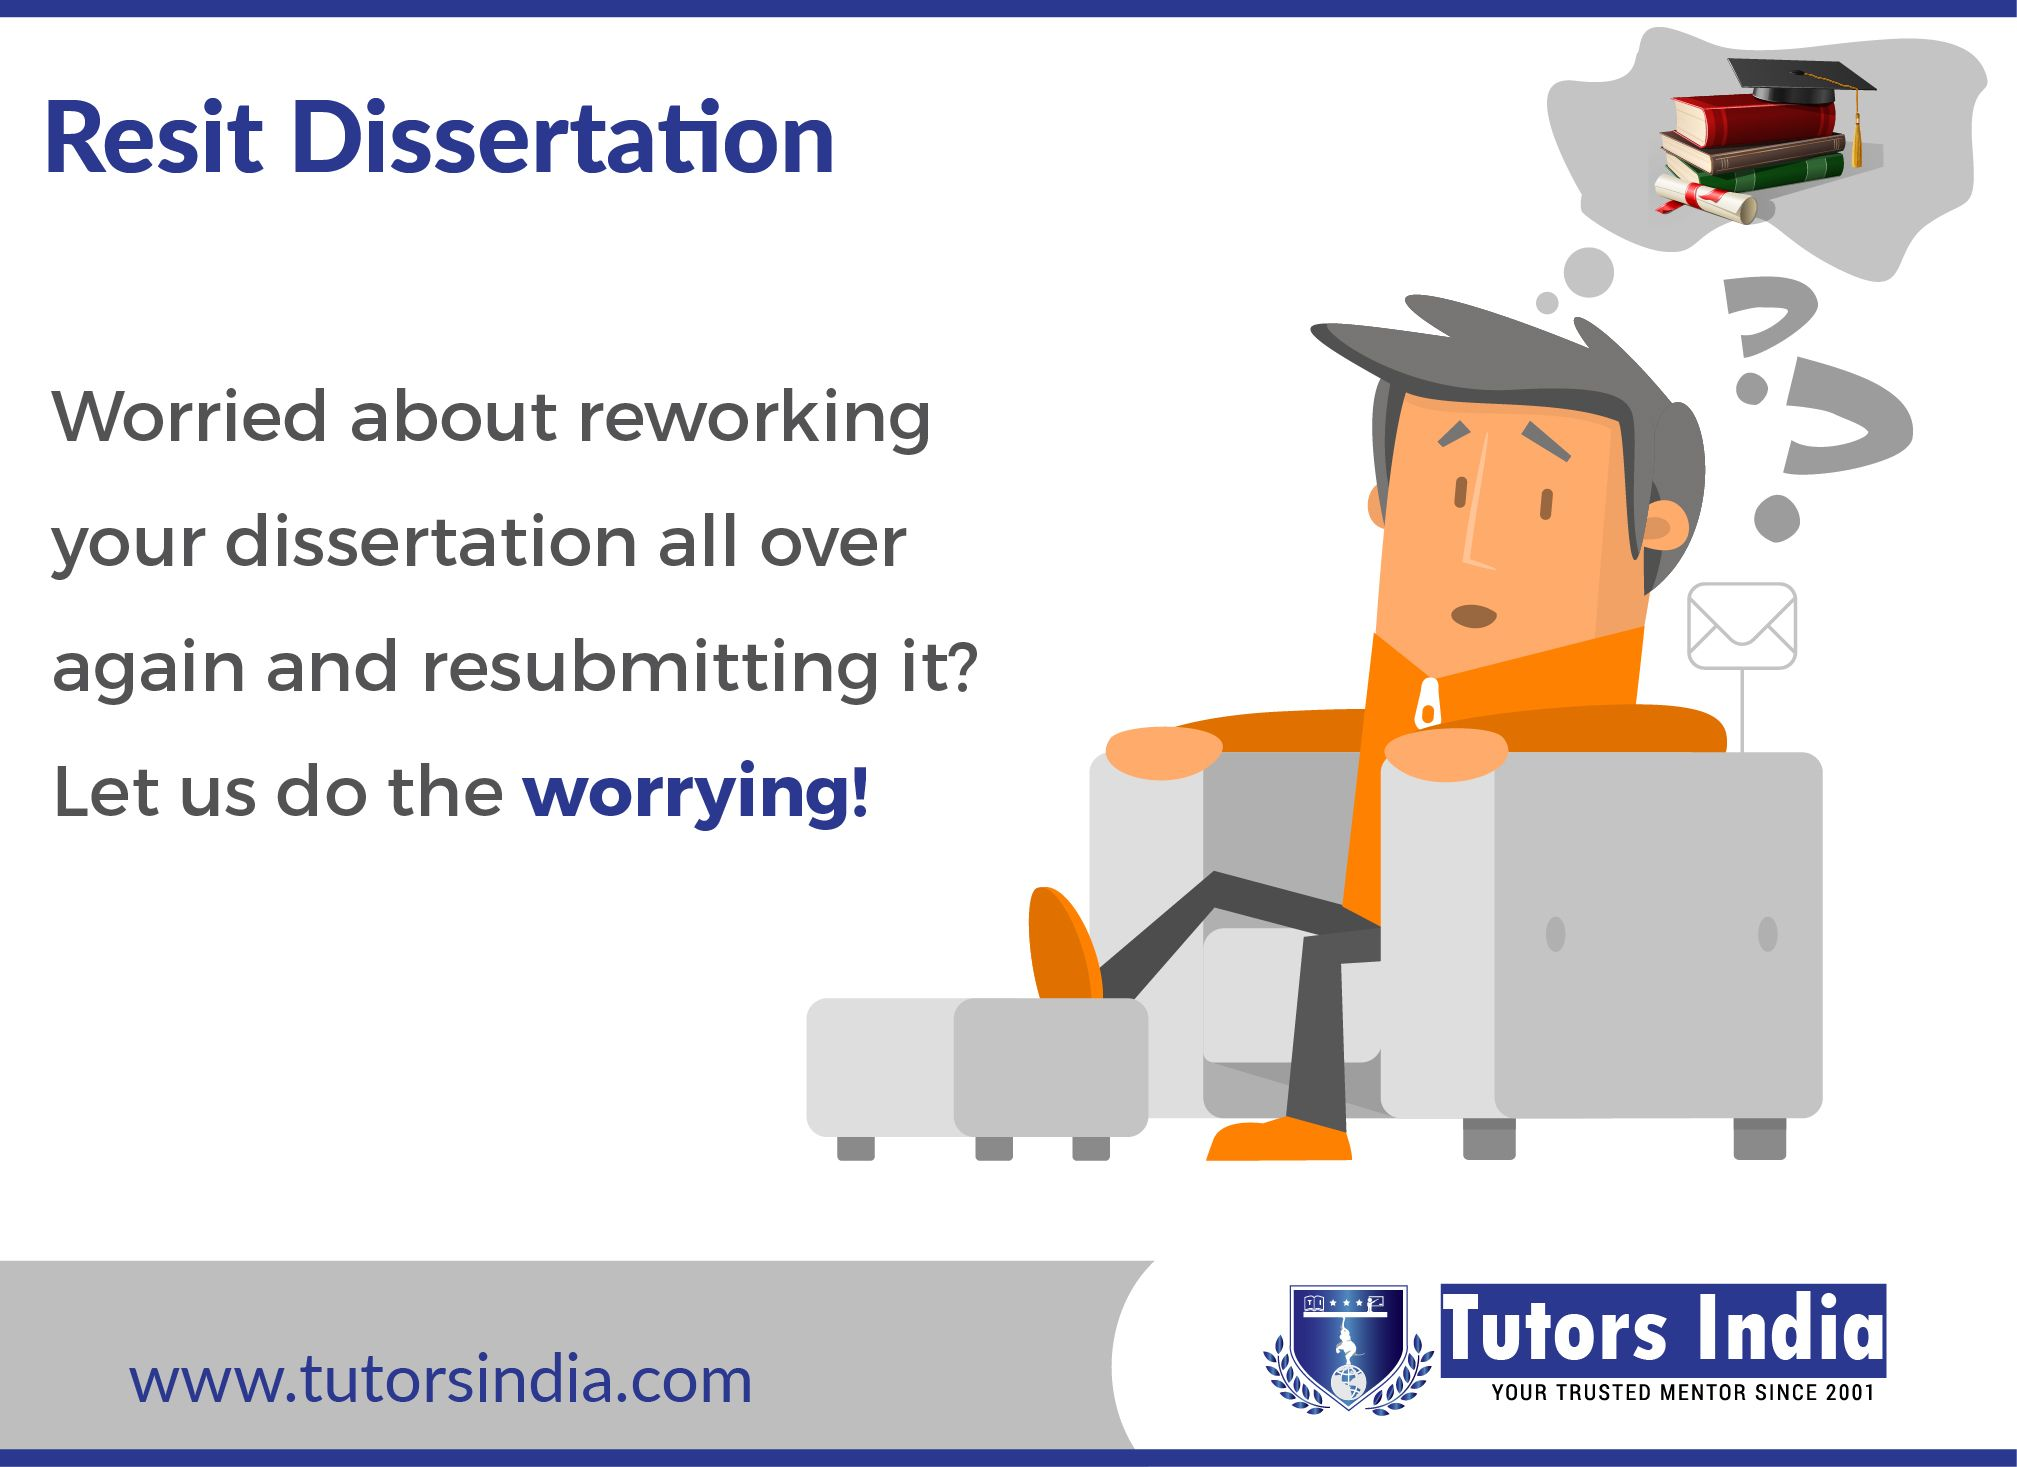 Resit Dissertation Service That Tutorsindia Offer Are Exemplary Where We Focu On A Complete Overhaul Of Your Thesi Writing Services Mba Help Uk